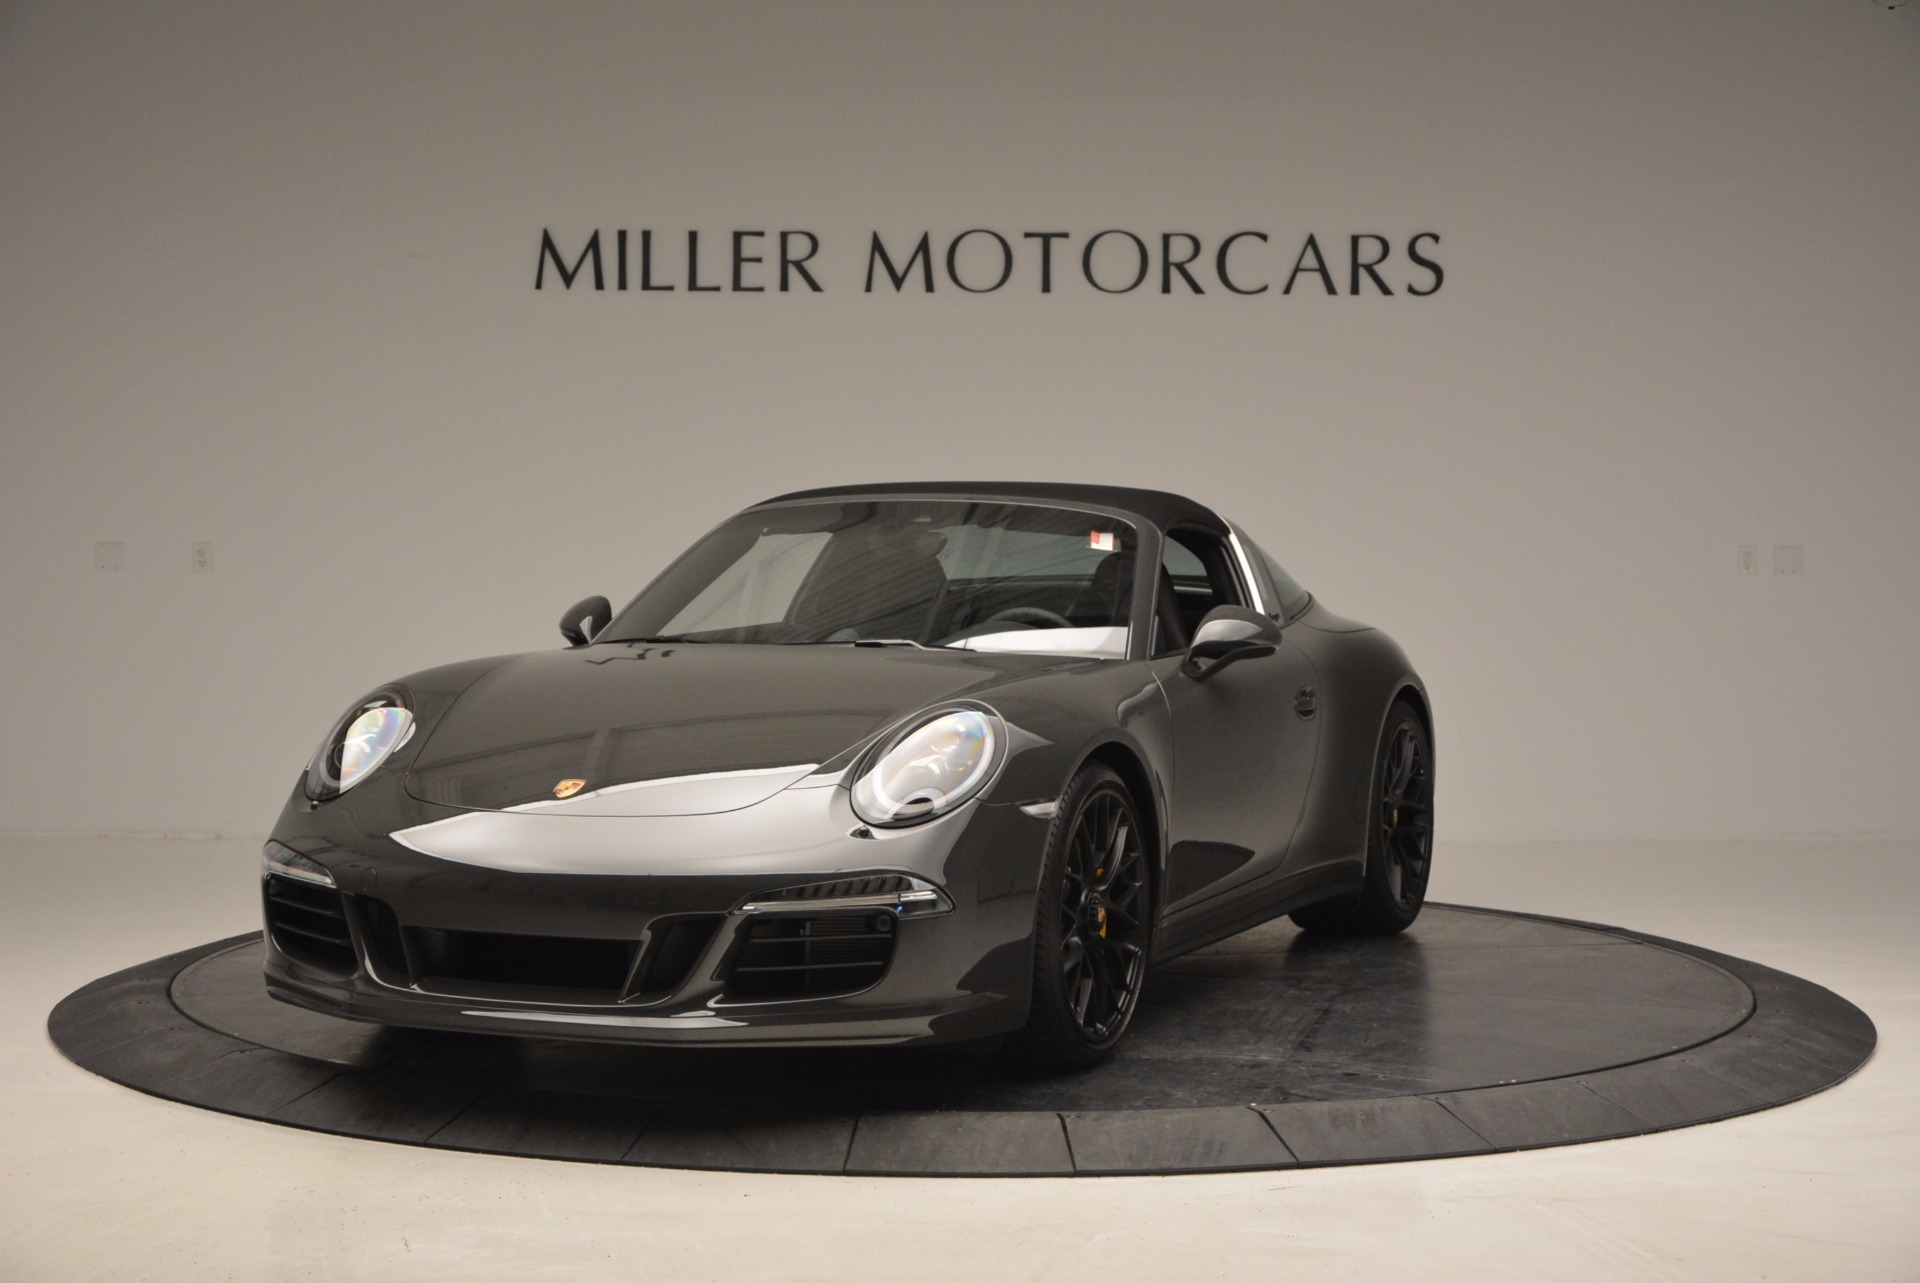 Used 2016 Porsche 911 Targa 4 GTS for sale Sold at Pagani of Greenwich in Greenwich CT 06830 1